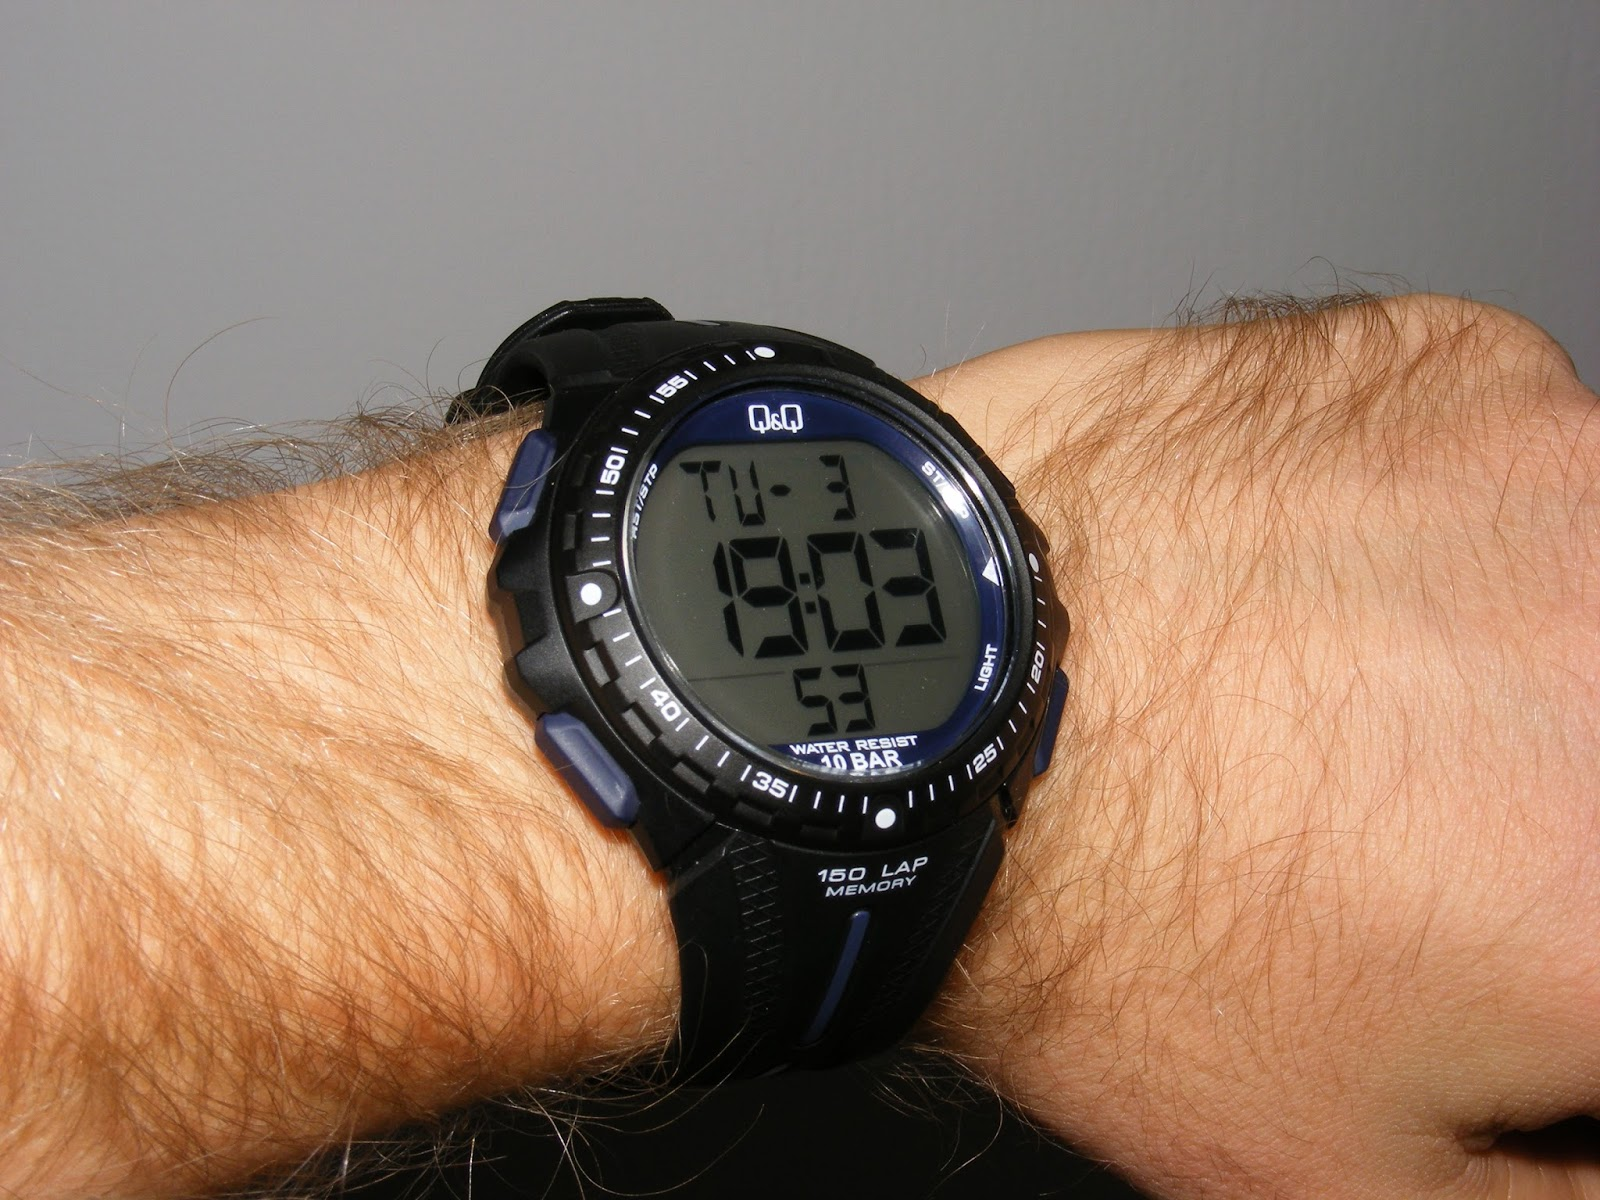 q&q sports running watch 150 laps digital